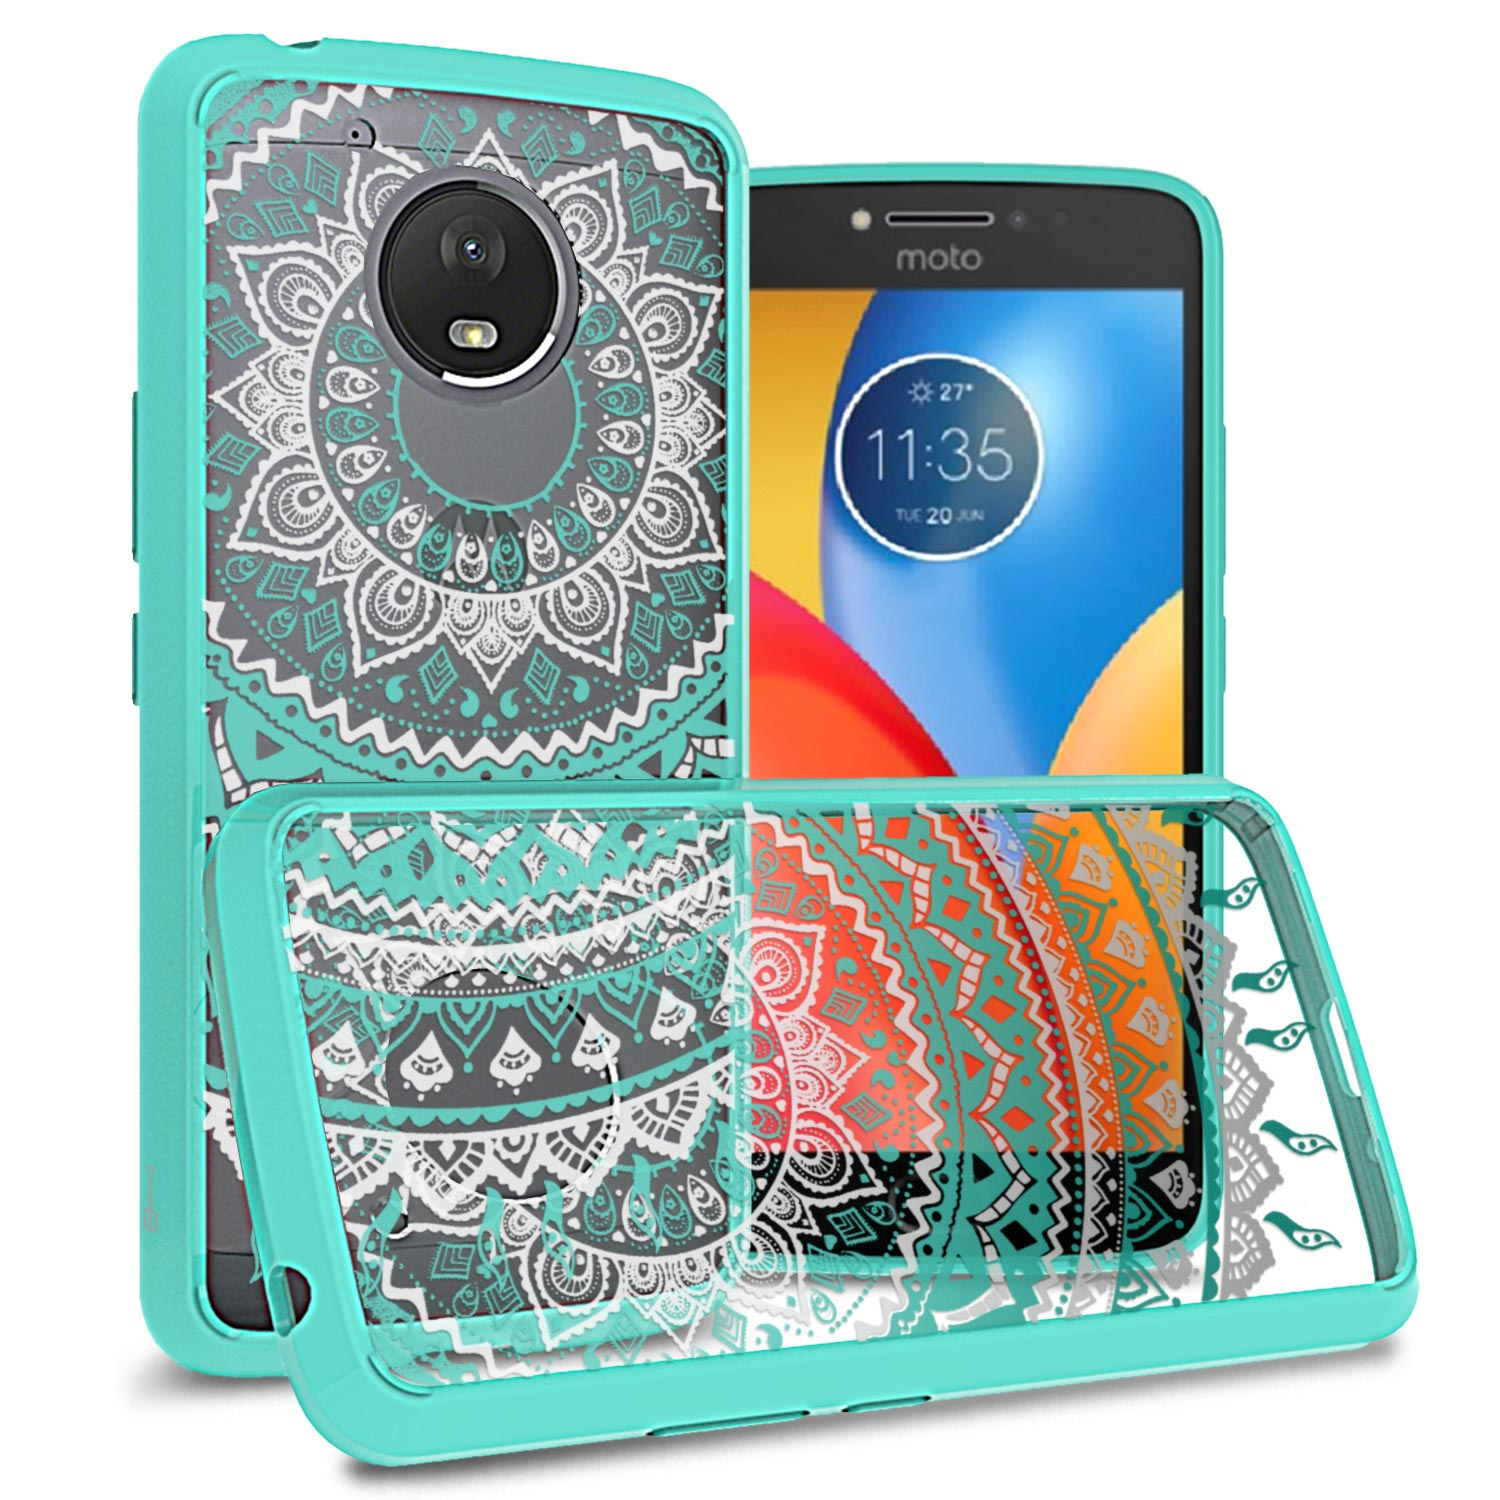 sports shoes b14be f4331 Details about Slim Fit Back Cover Case For Motorola Moto E4 Plus (E Plus  4th Gen) Teal Mandala